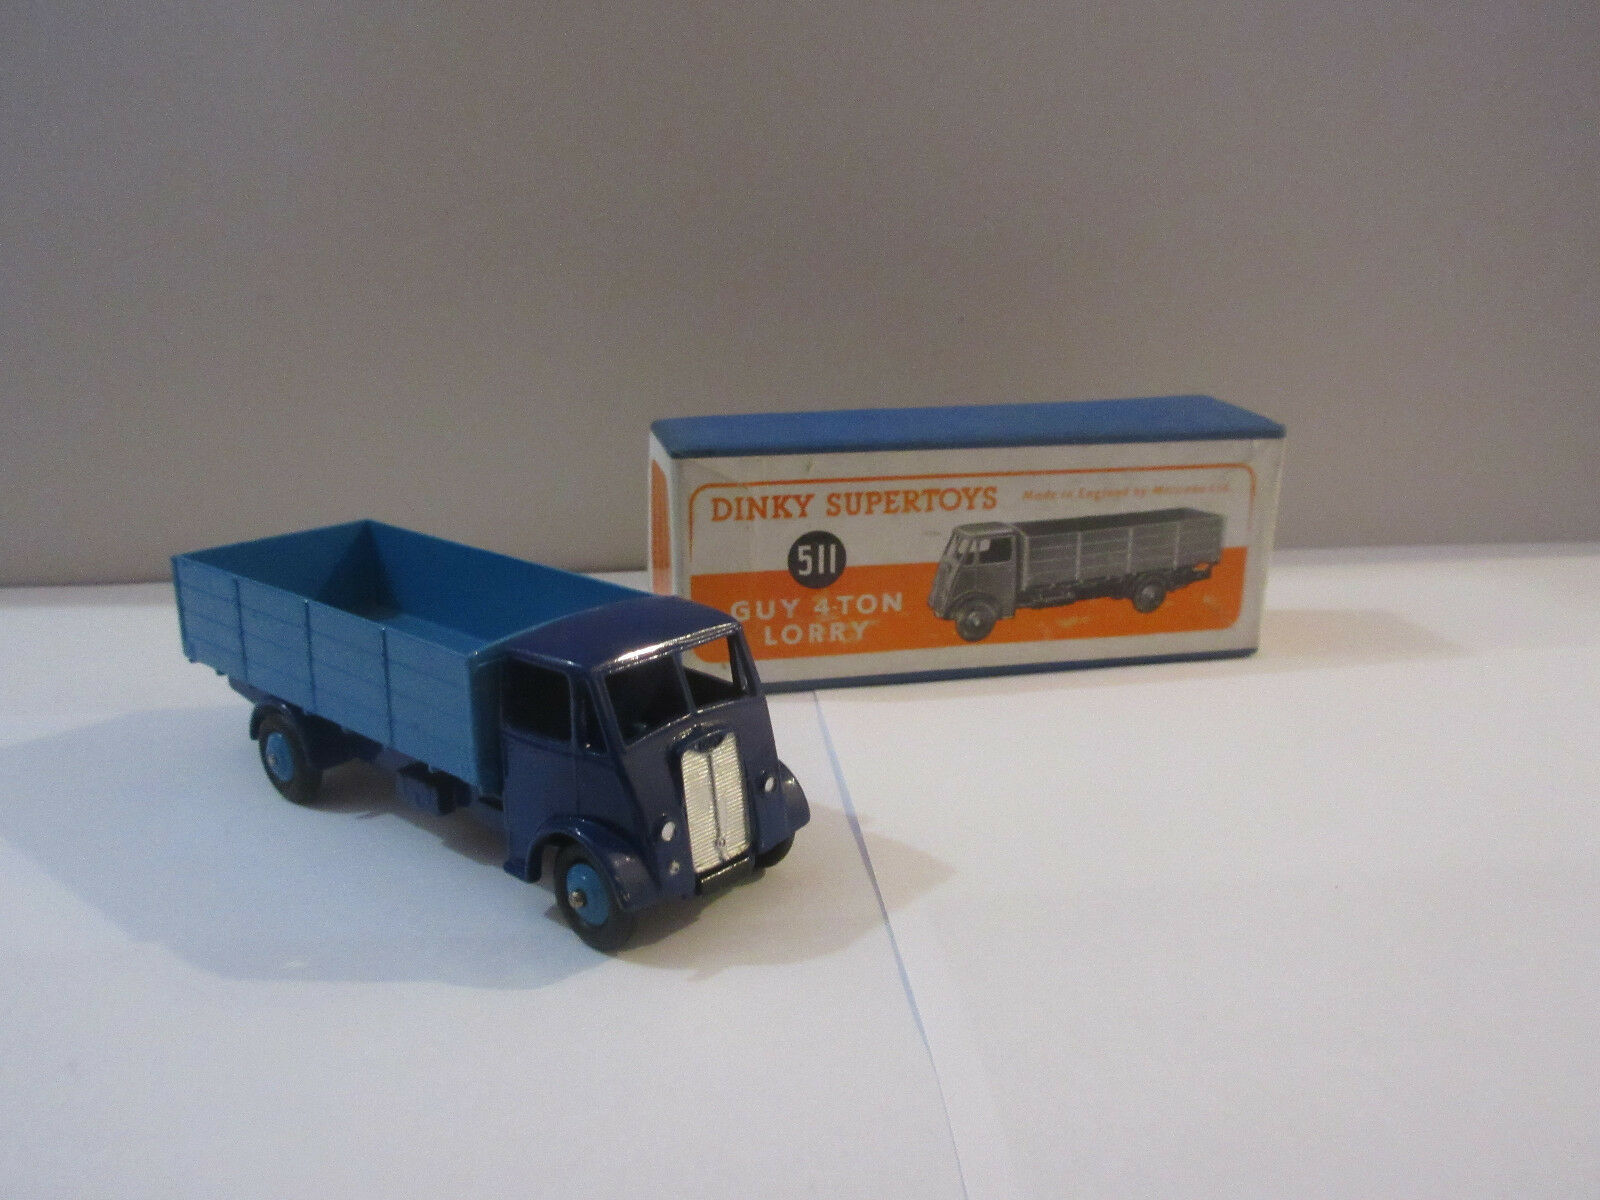 Dinky Supertoys 511 Guy 4 Ton Lorry - bluee, mint condition